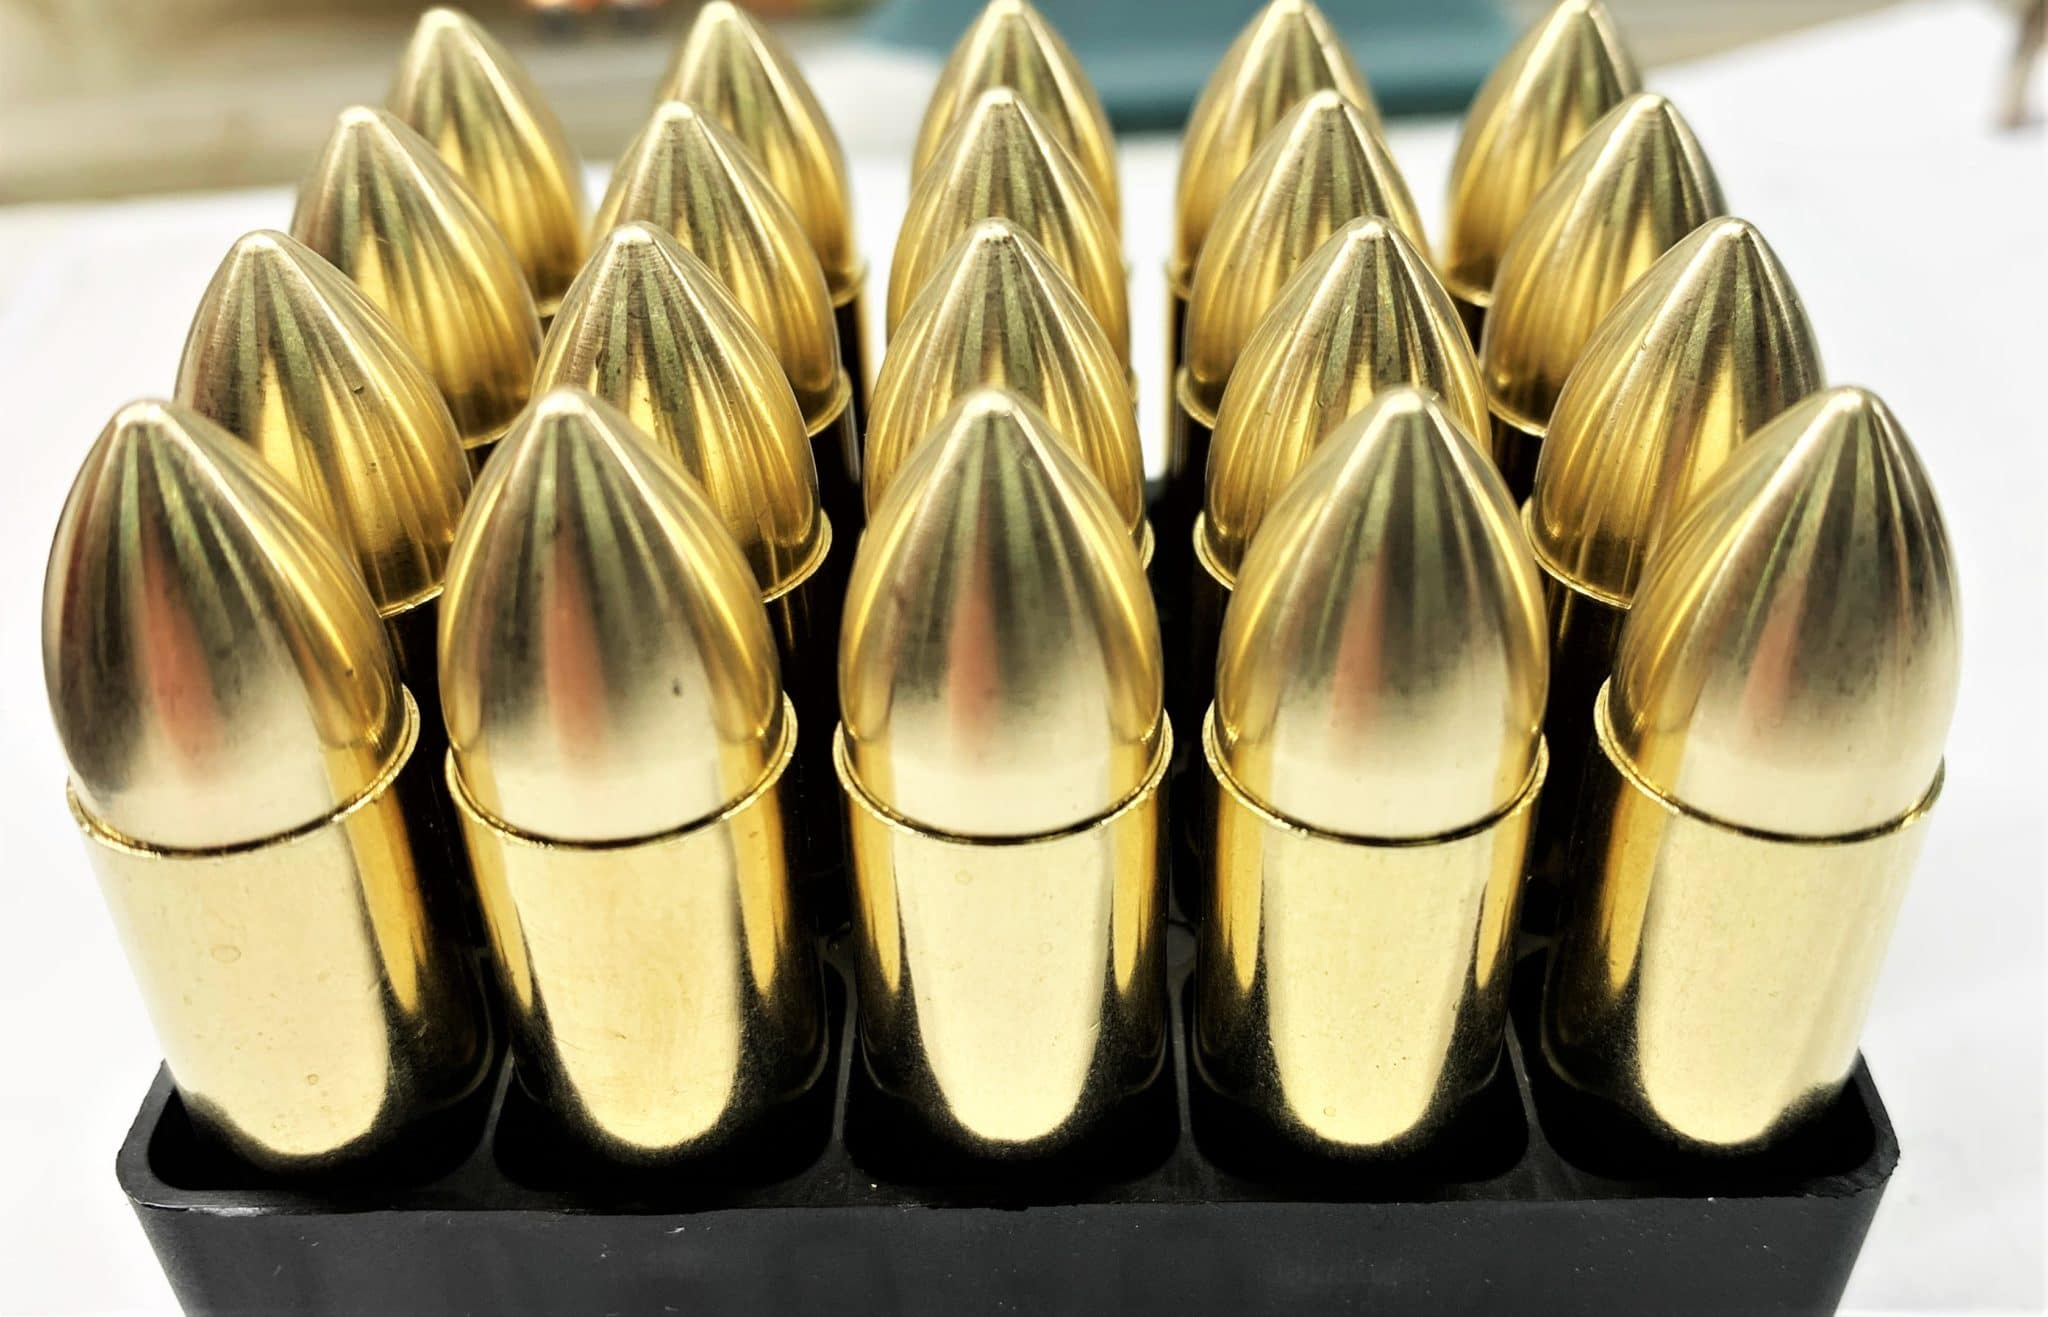 Steinel Ammunition Brass Spike Ammo for .50 Beowulf Uppers Now Available